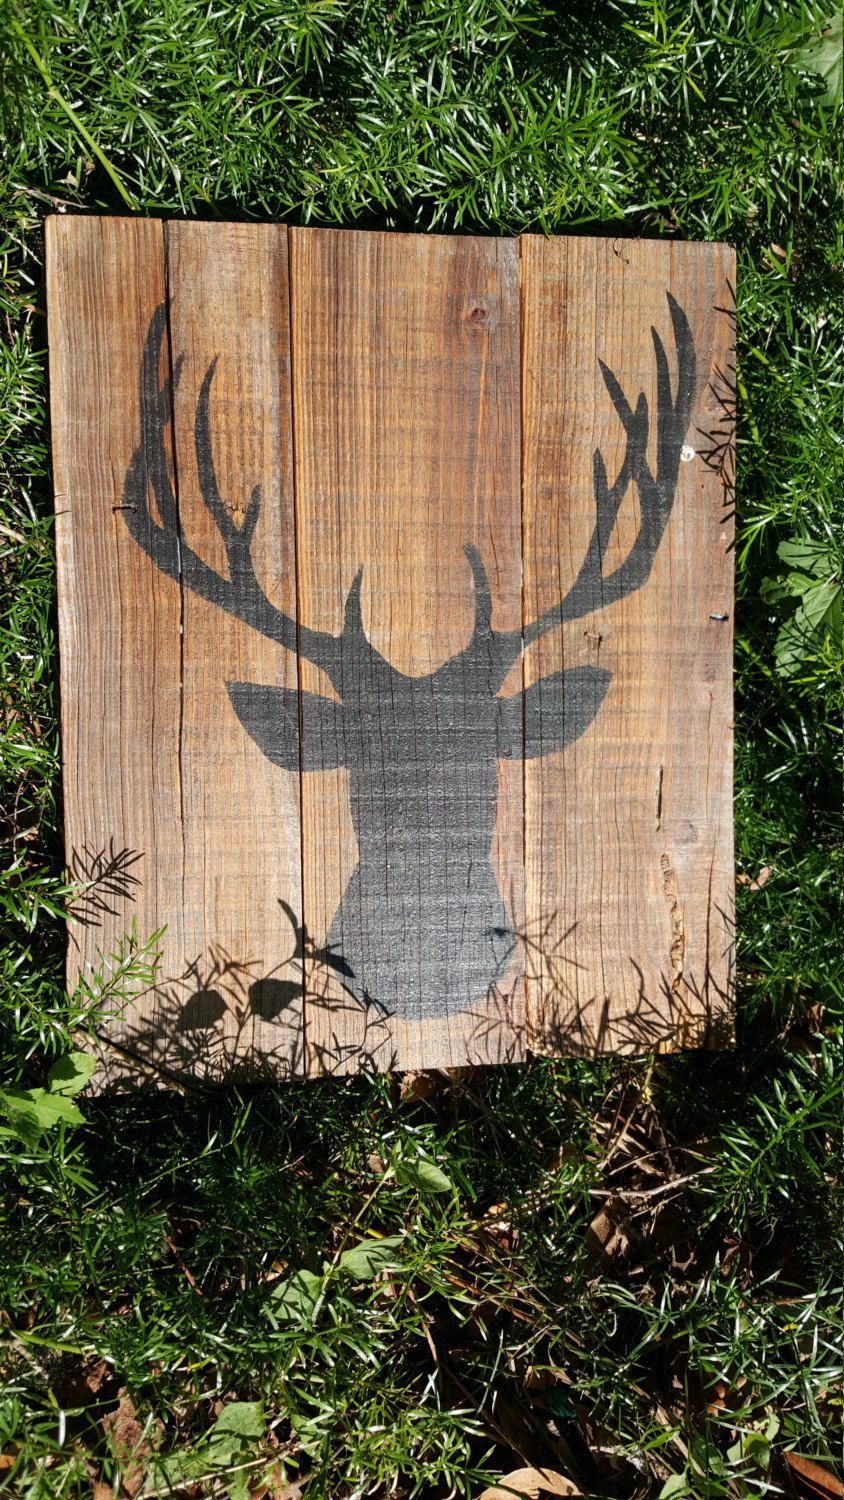 Wood sign - Deer silhouette - Deer head - Deer Hunting - Sign on rustic reclaimed barn wood. Deer silhouette on reclaimed barn wood. Measures approximately 17 tall x 14 wide and is painted in black over natural wood unless you specify otherwise. This rustic deer silhouette sign is pretty yet rustic! You can choose any basic color for the silhouette at no additional charge. **Due to the nature of the reclaimed wood, each sign will vary slightly. We feel this only adds to the character & m...